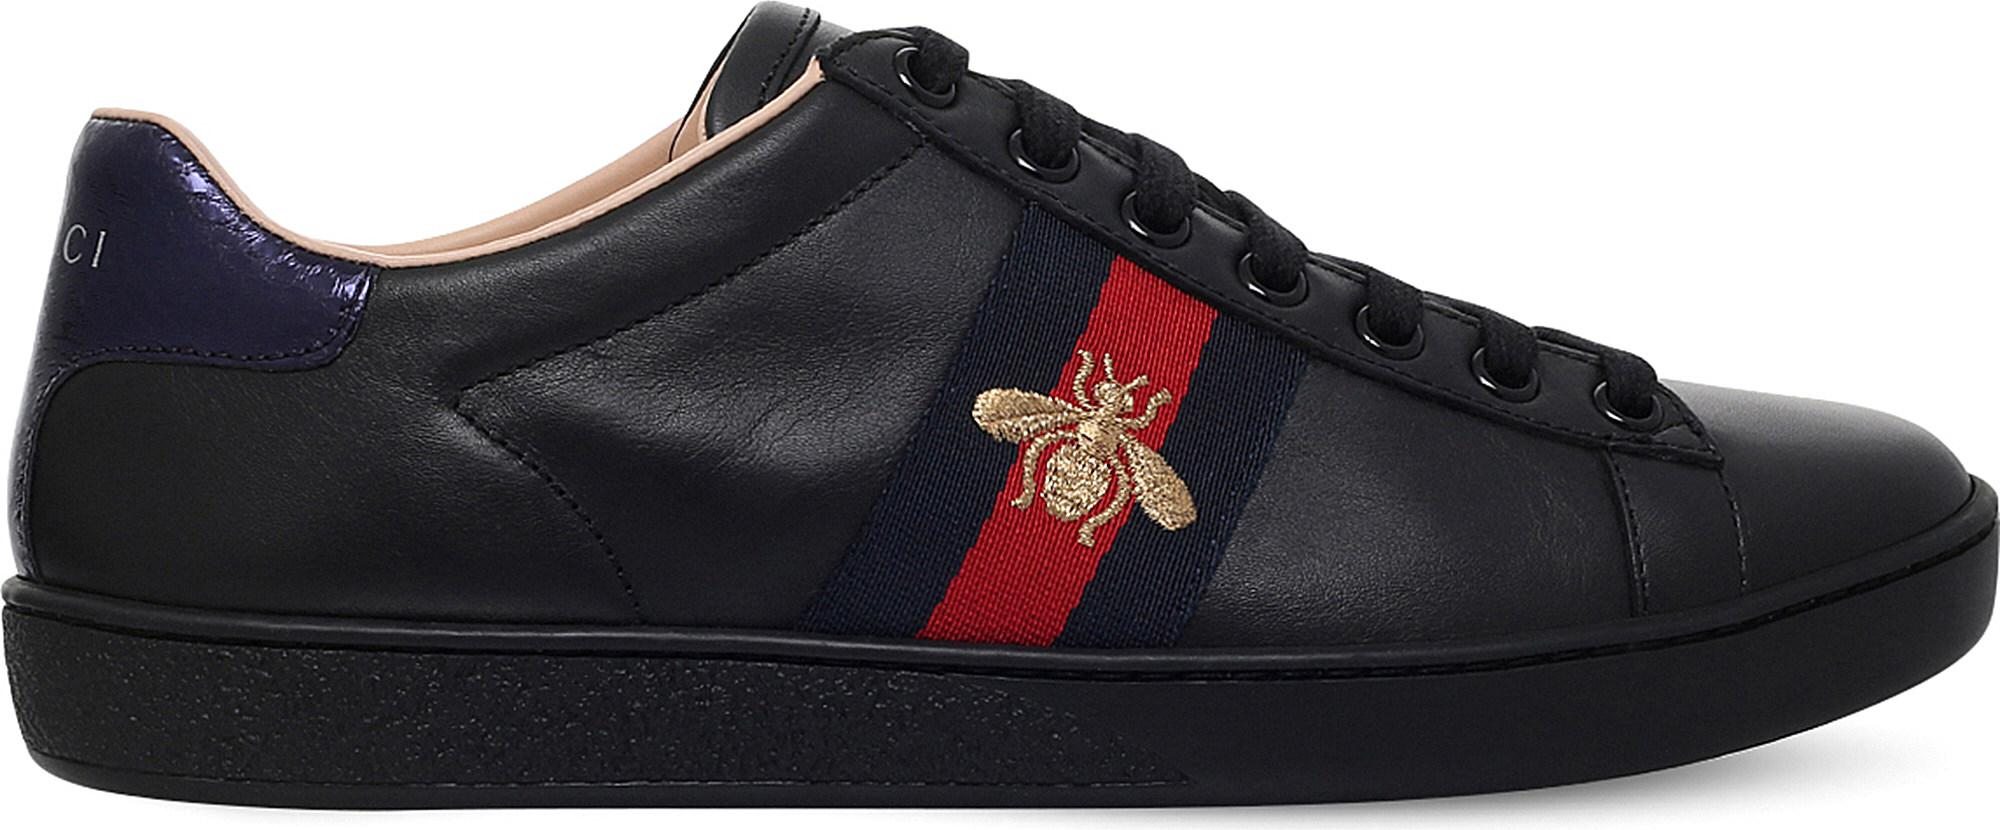 5dc7b3793be Gucci Ladies New Ace Bee-embroidered Leather Trainers in Black - Lyst